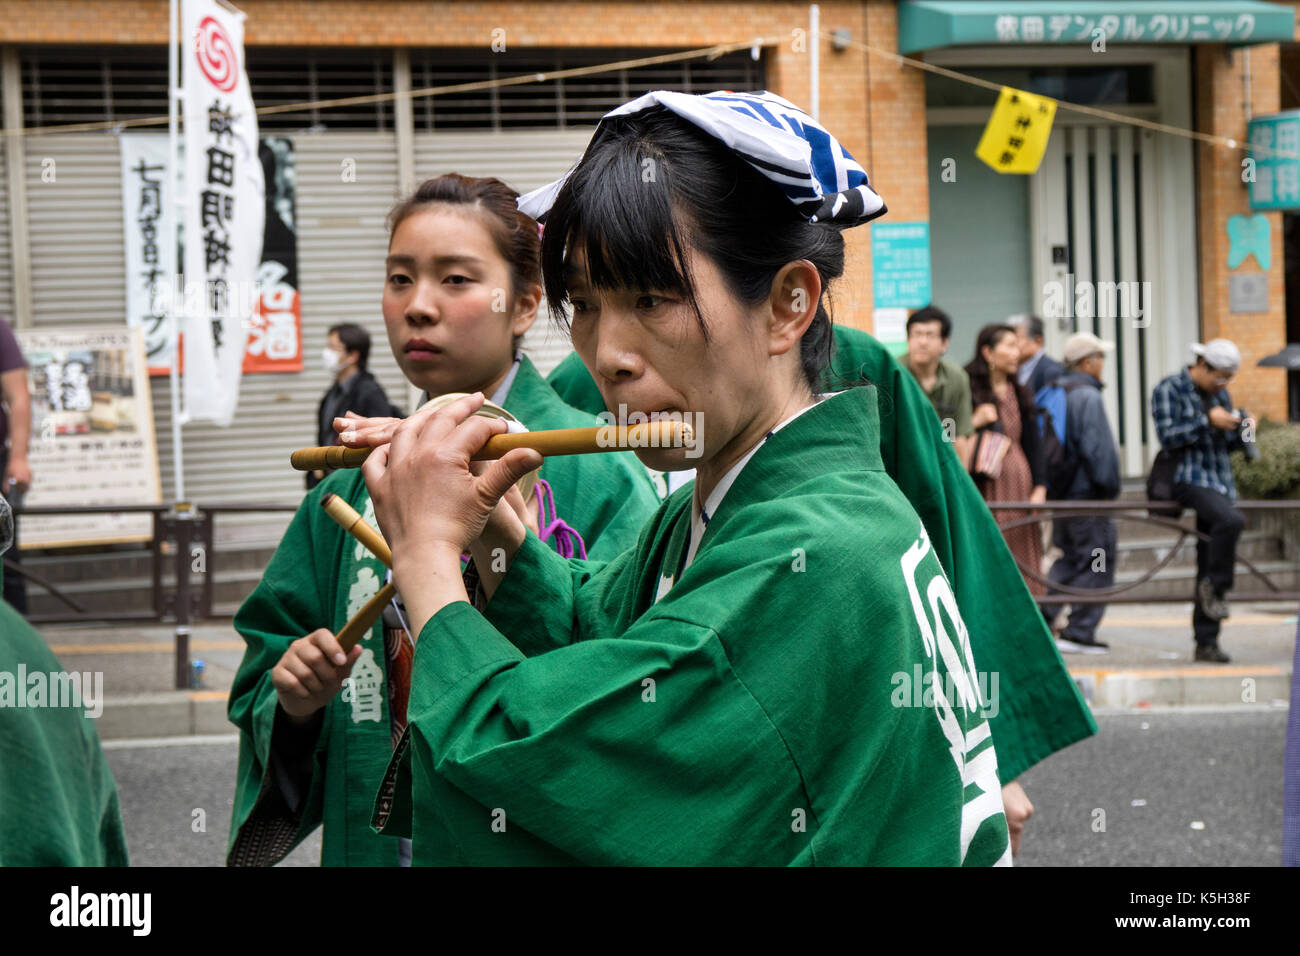 Tokyo, Japan - May 14, 2017: Woman in traditional kimono playing the flute in the festival parade at the Kanda Matsuri Festival - Stock Image